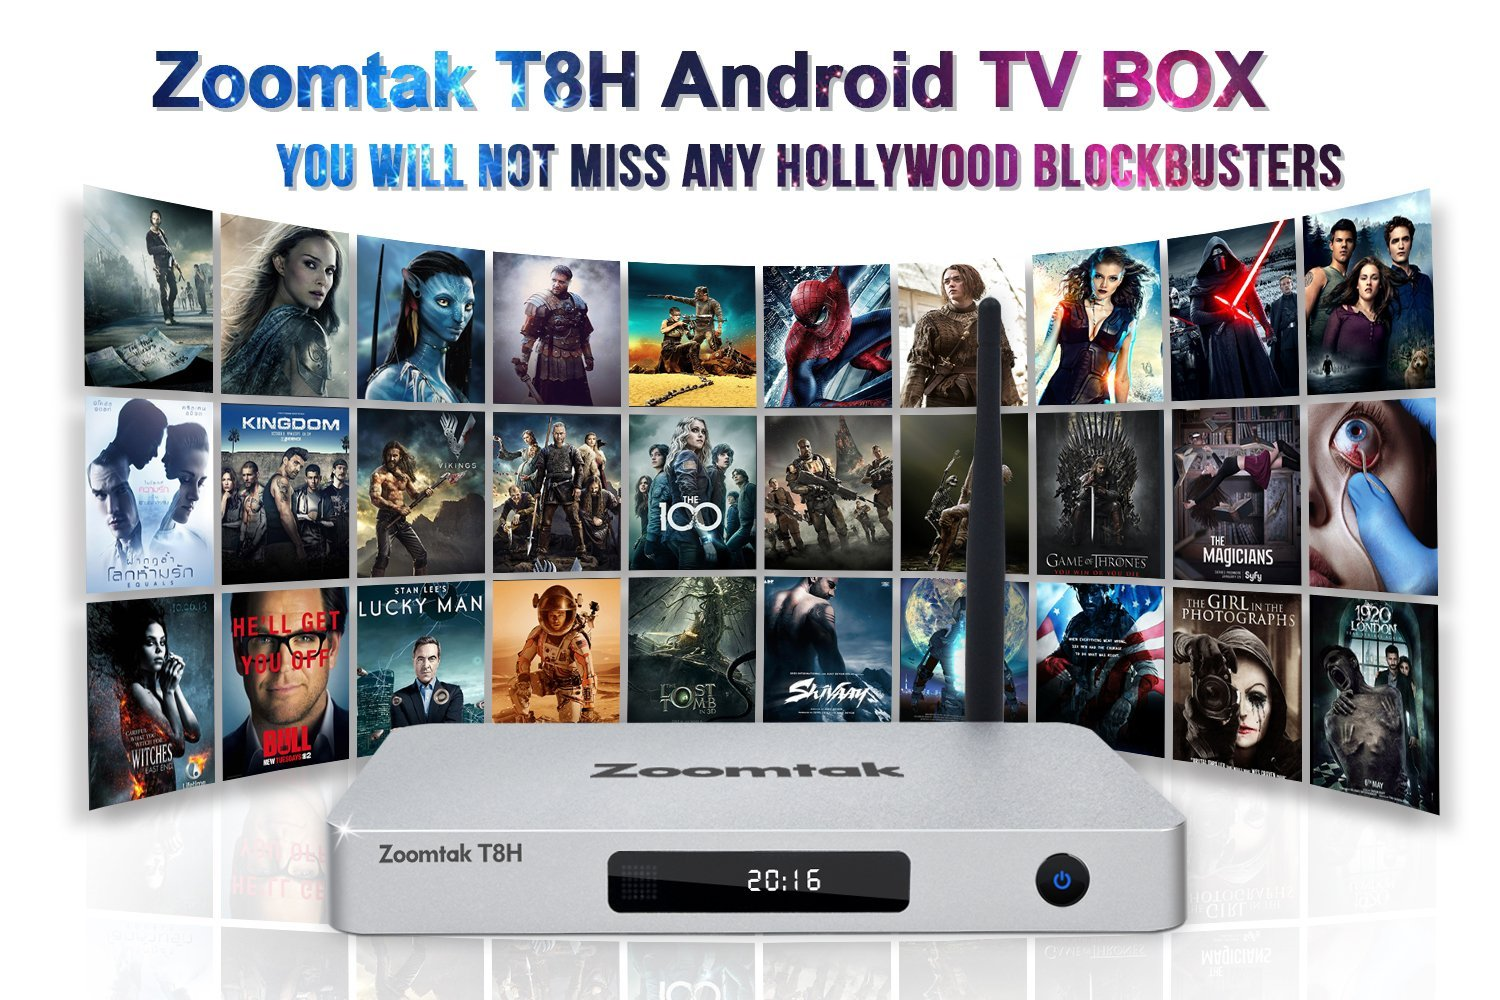 Zoomtak Android TV Box T8H Stunning 4K Streaming Media Player Amlogic S905 Quad Core Unique Media Manager App Smart TV Tuner Watch FREE Movies Sports Shows